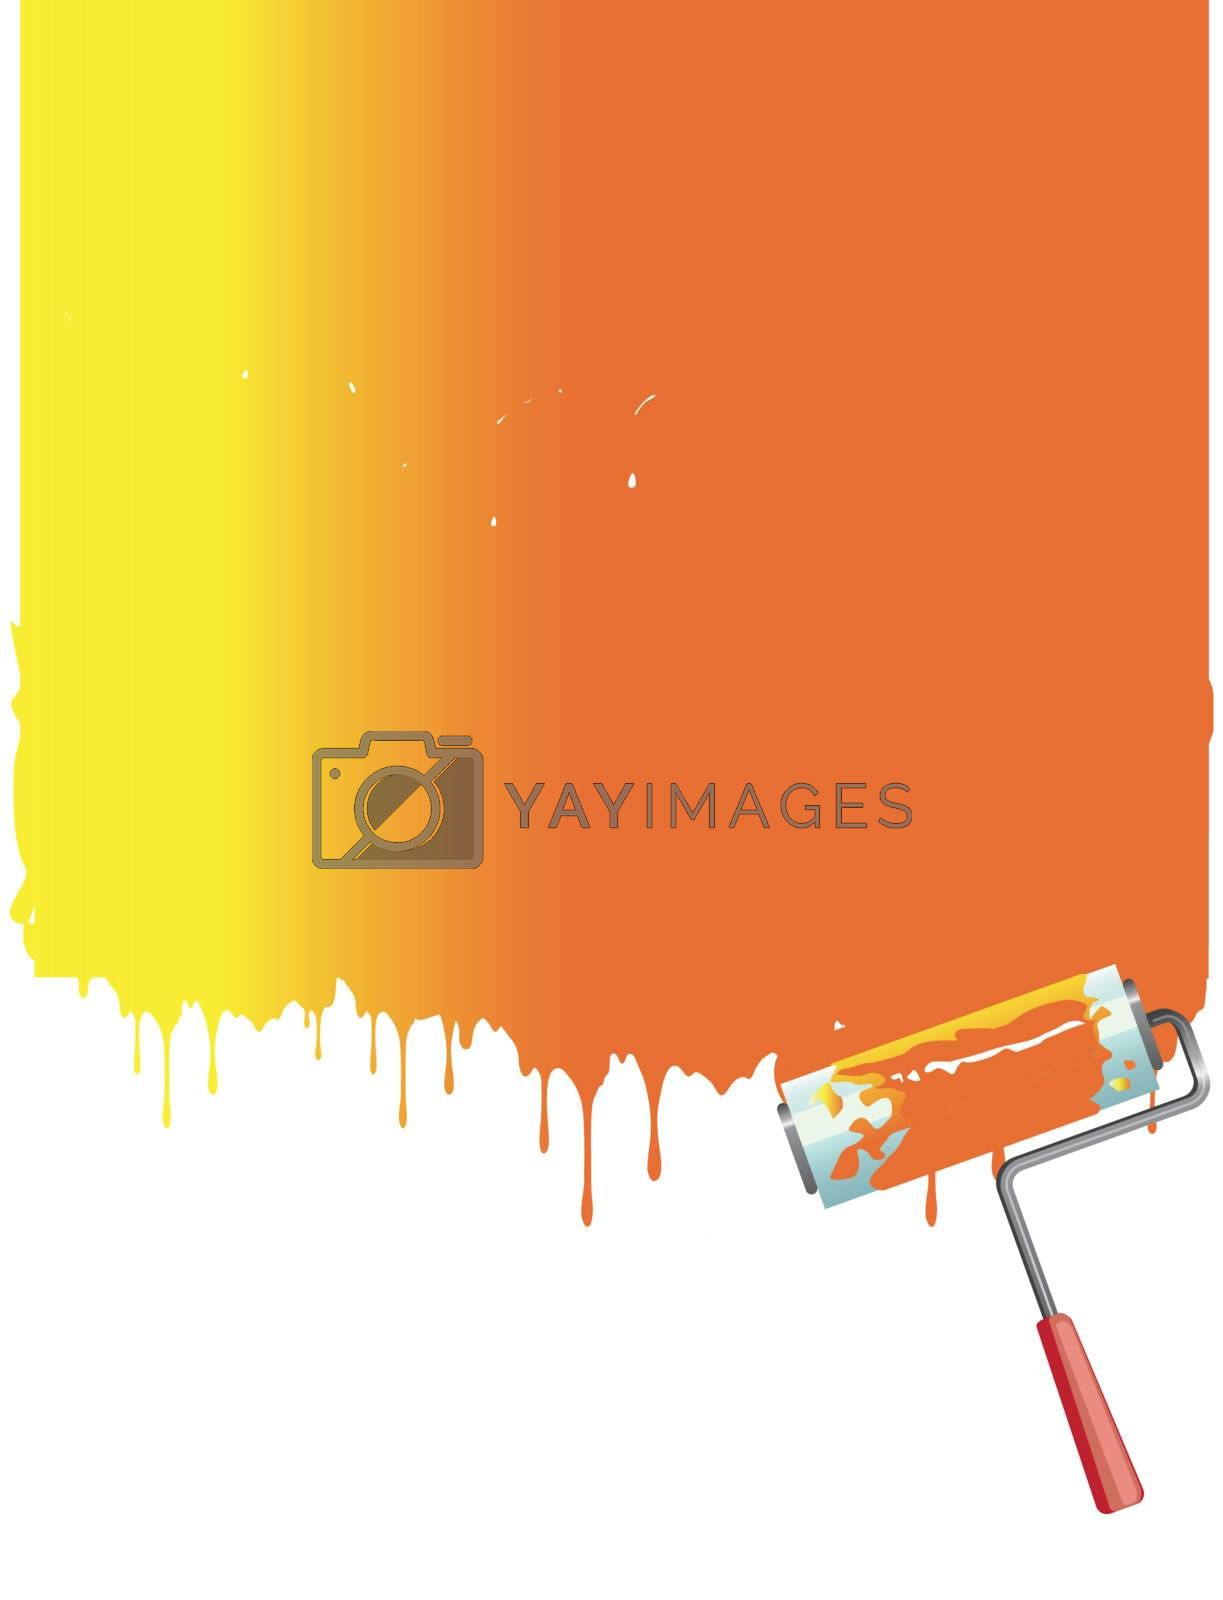 orange roller painting the white wall. Vector background